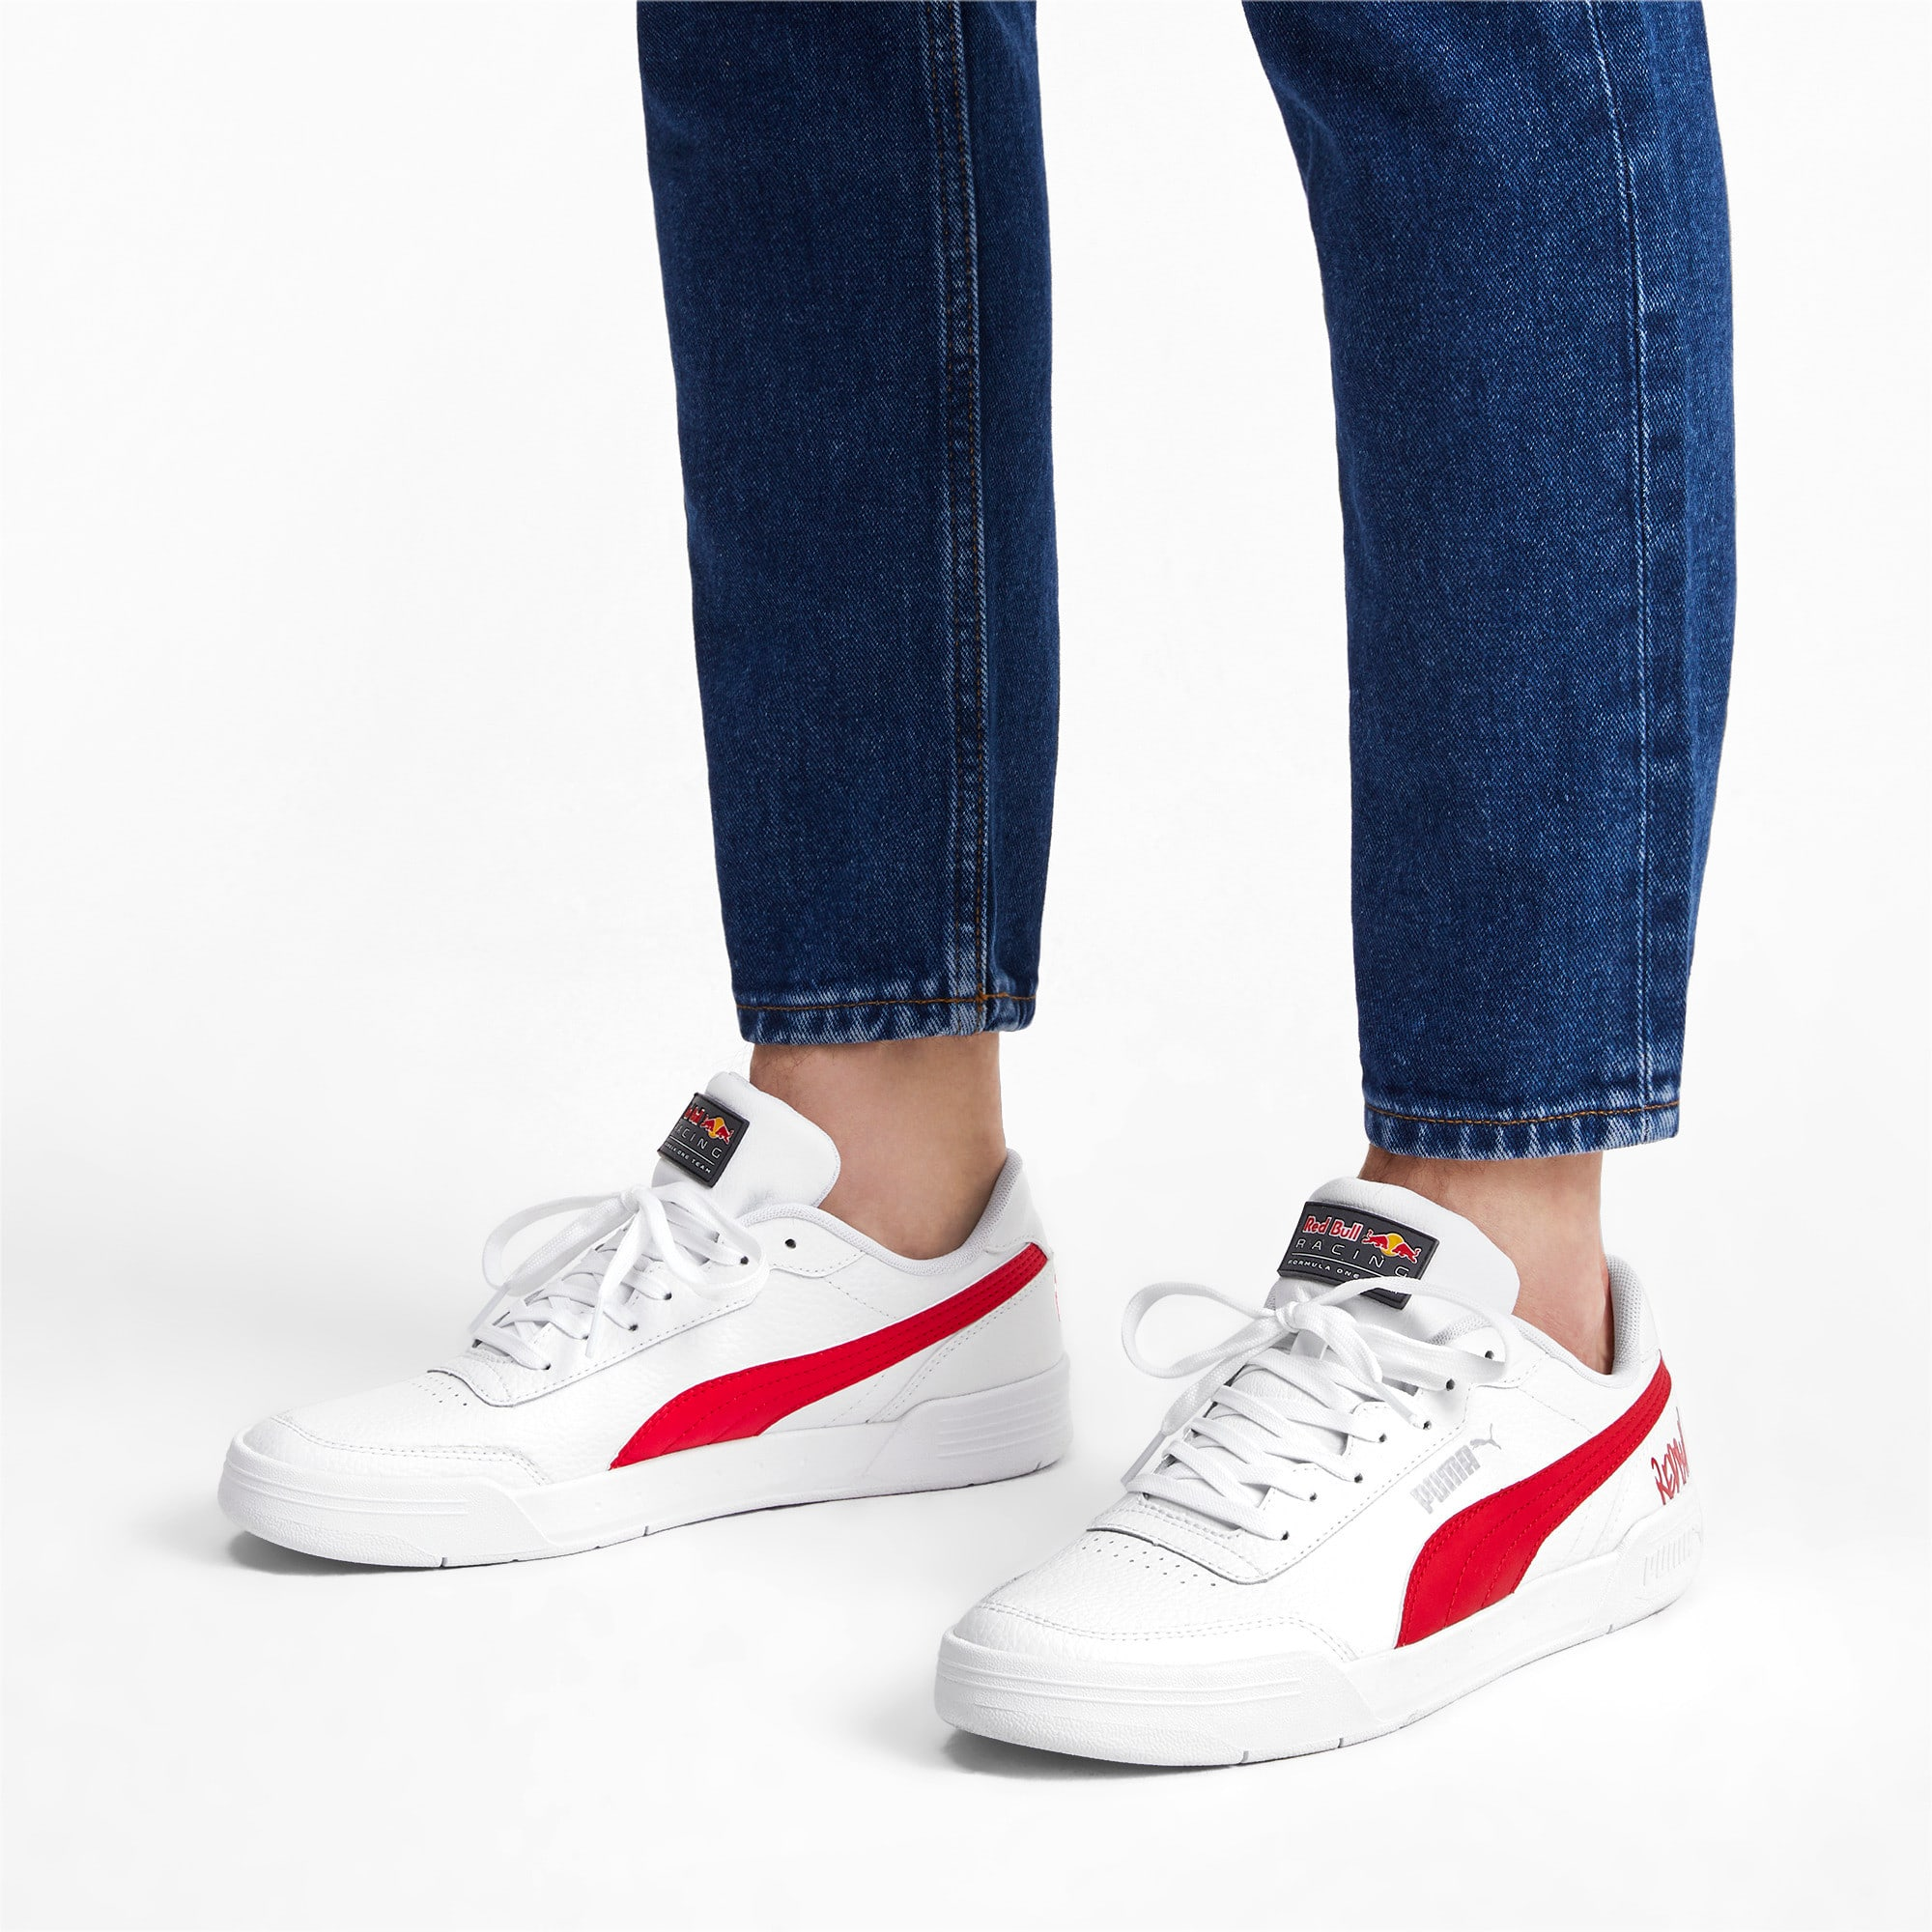 Thumbnail 2 of Red Bull Racing Caracal Trainers, Puma White-Chinese Red-White, medium-IND